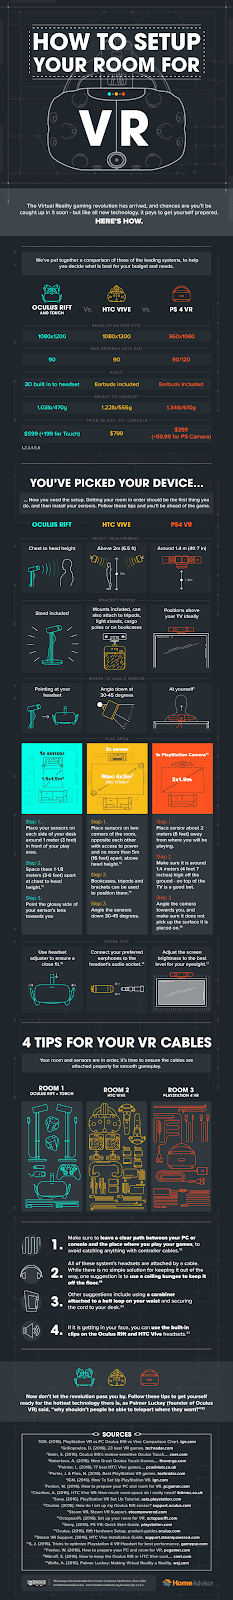 650px How to setup your room for VR